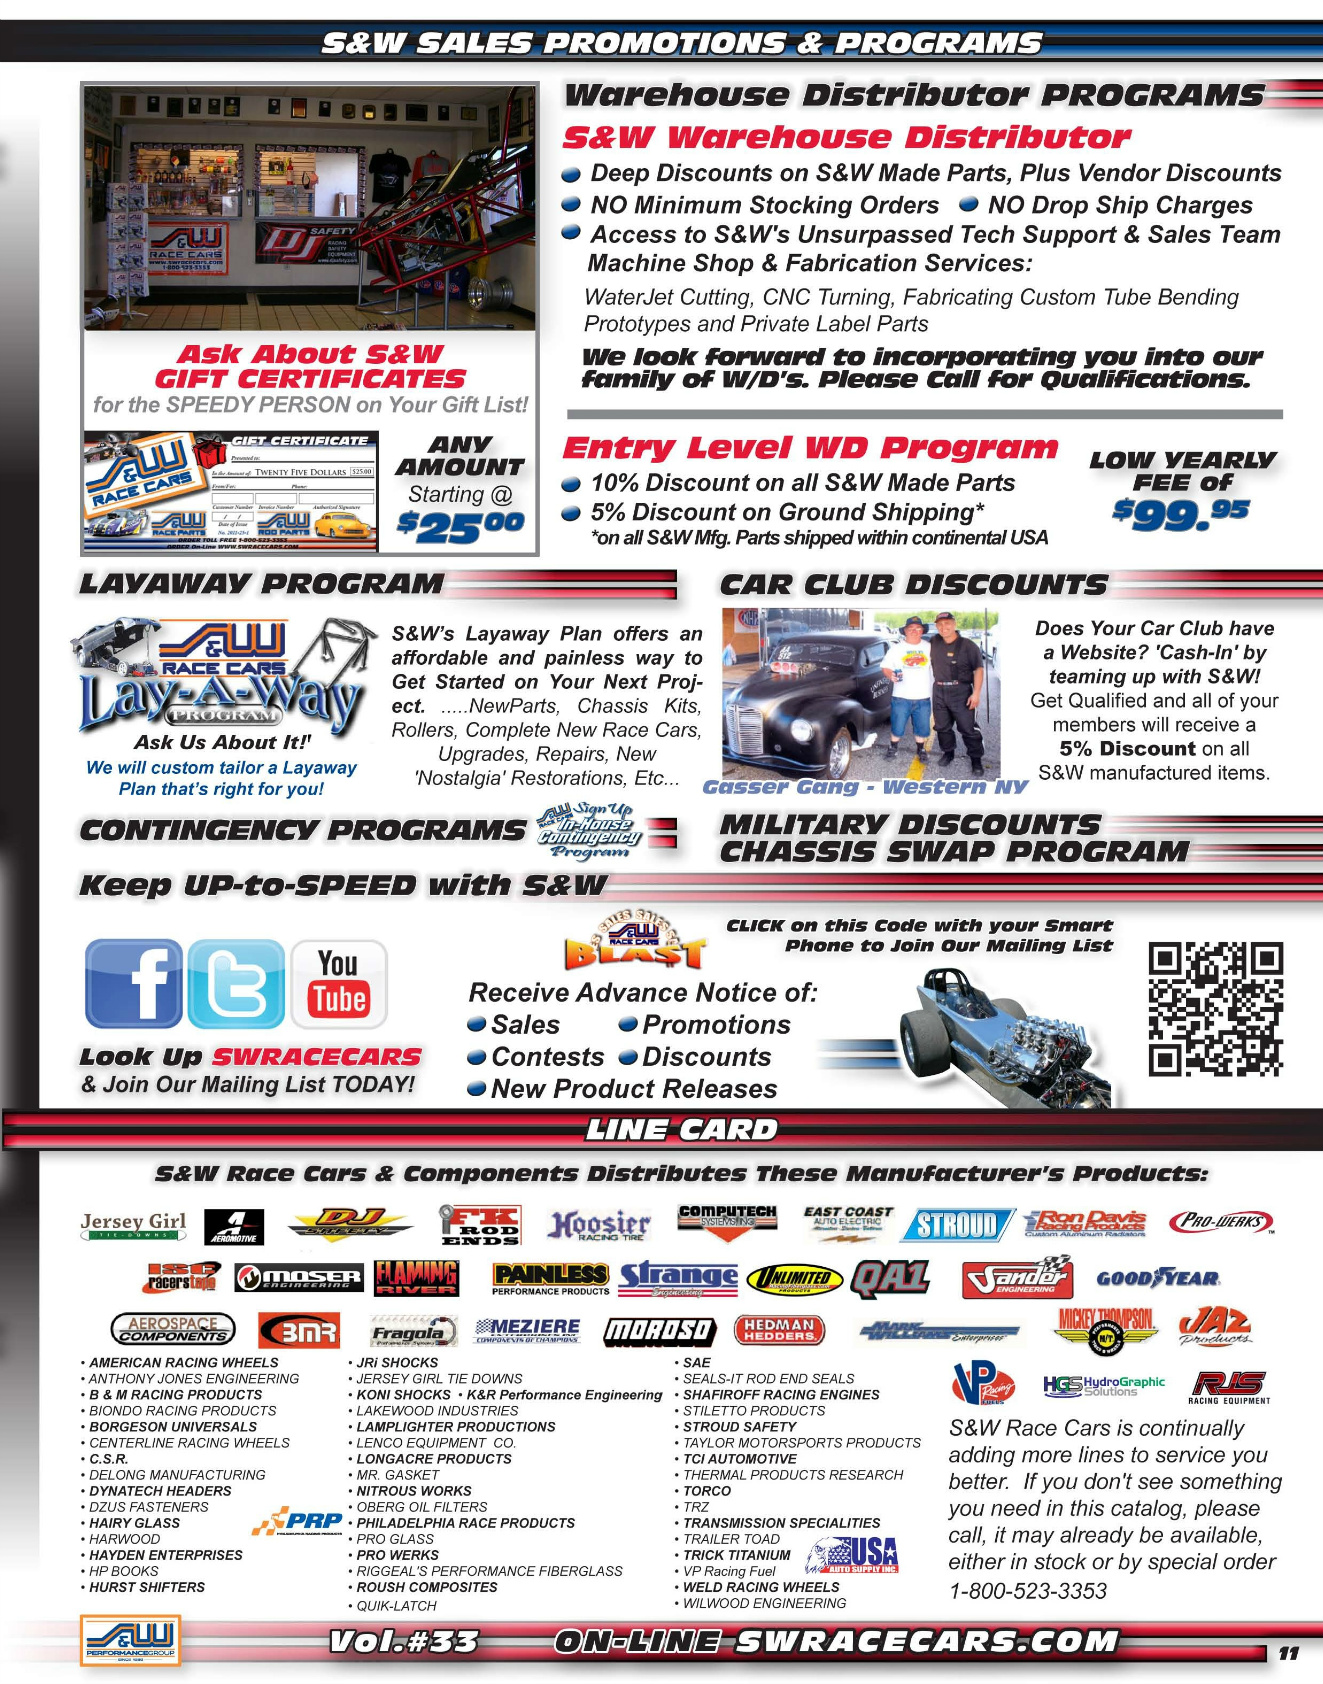 Index of /sw-race-cars/catalog-vol-33/files/mobile